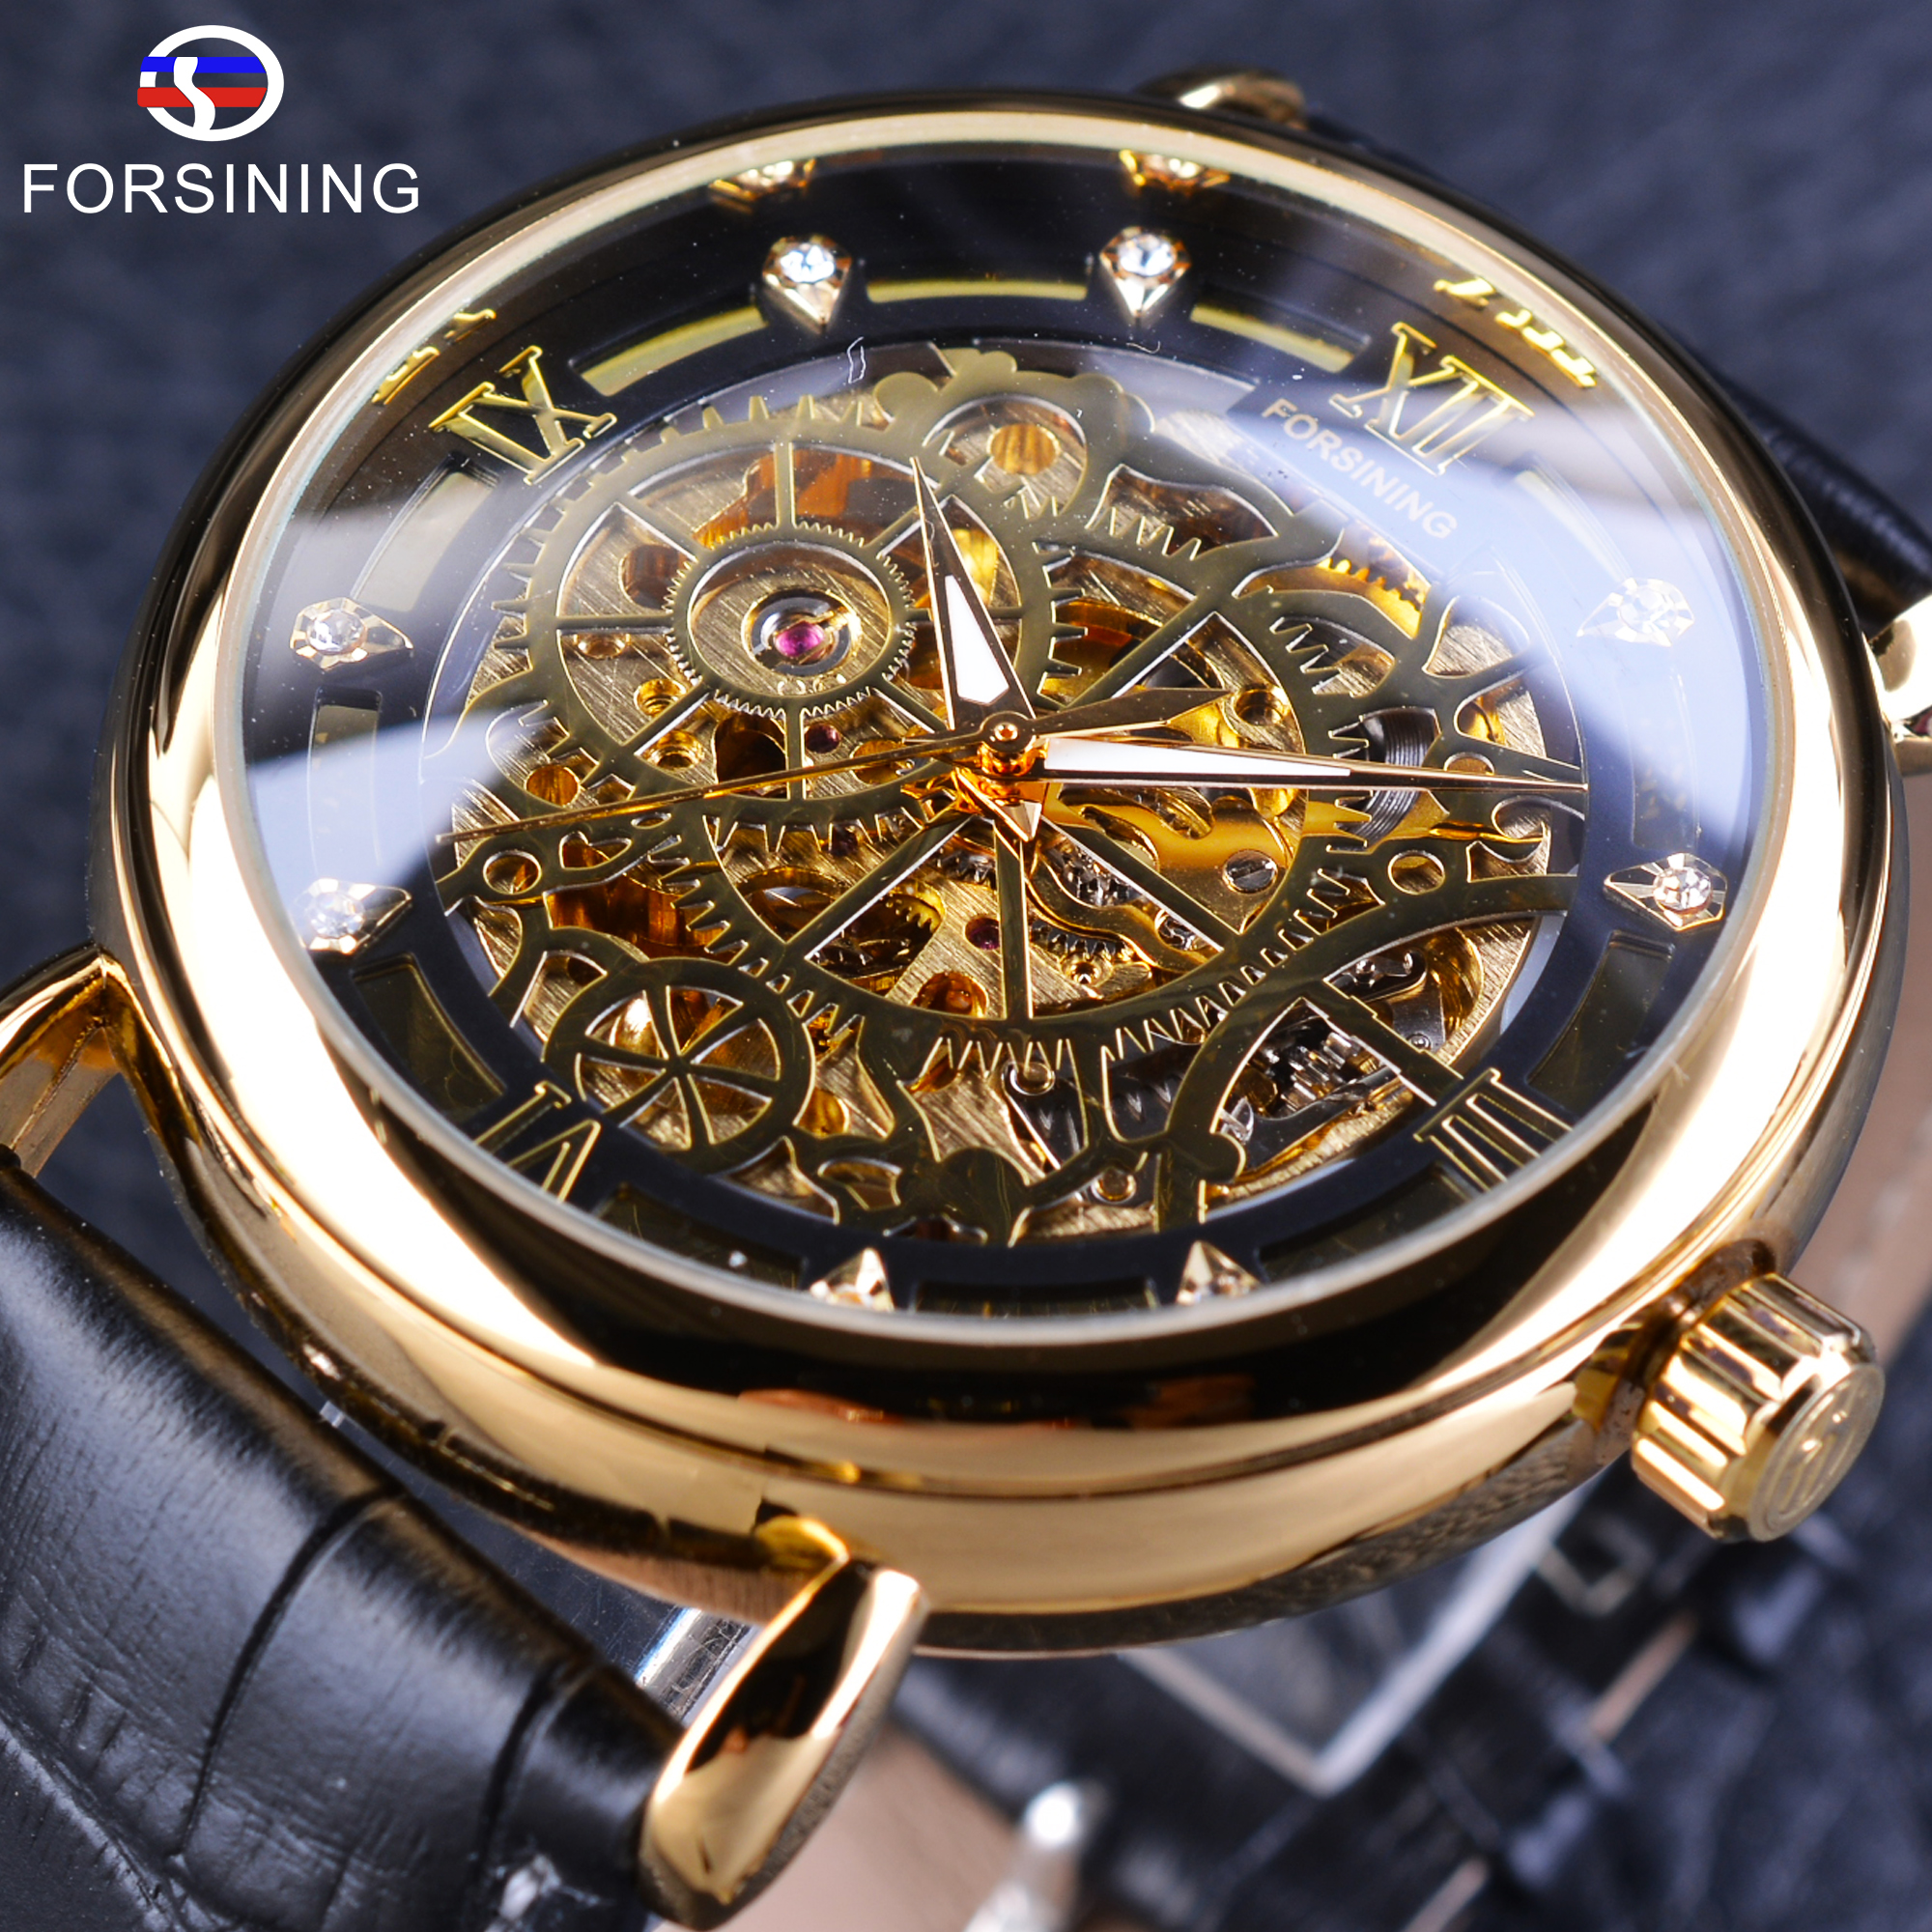 case item watches top luxury in men silver automatic golden wristwatch s transparent brand band bezel forsining skeleton mesh from dial mechanical